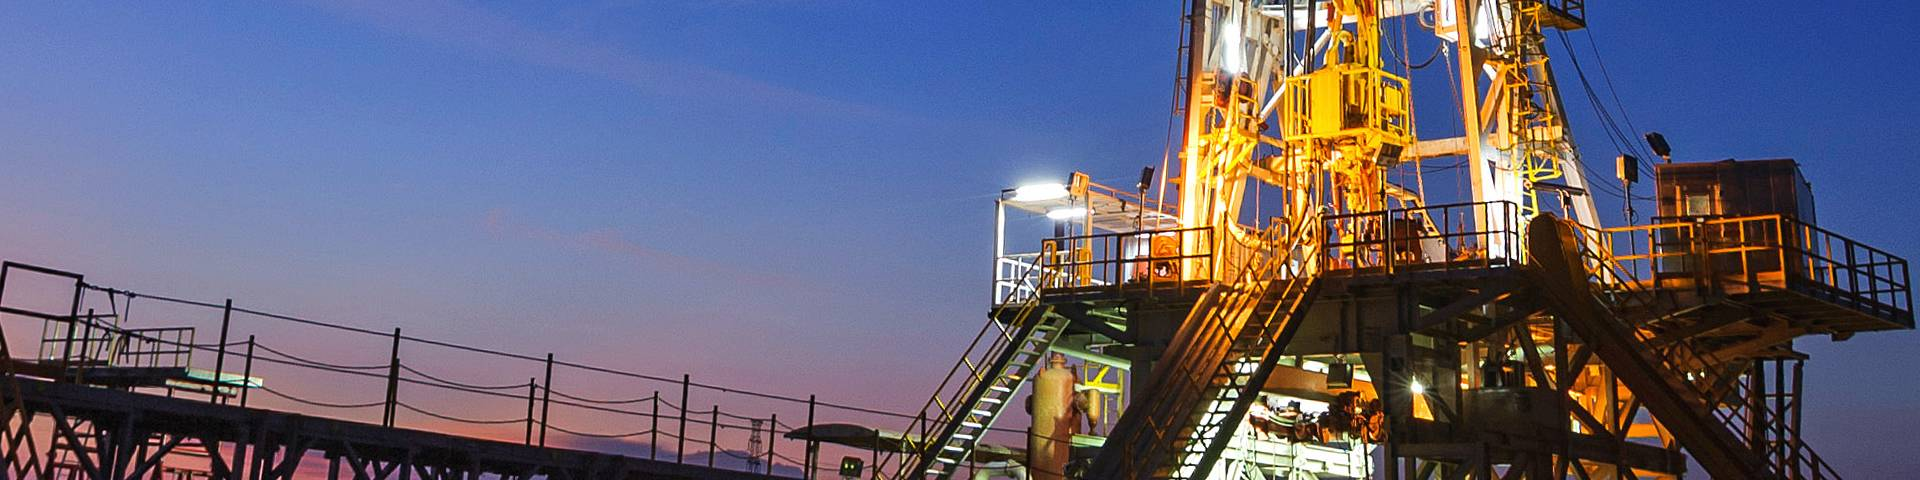 A brightly lit oil drilling rig looks very majestic.